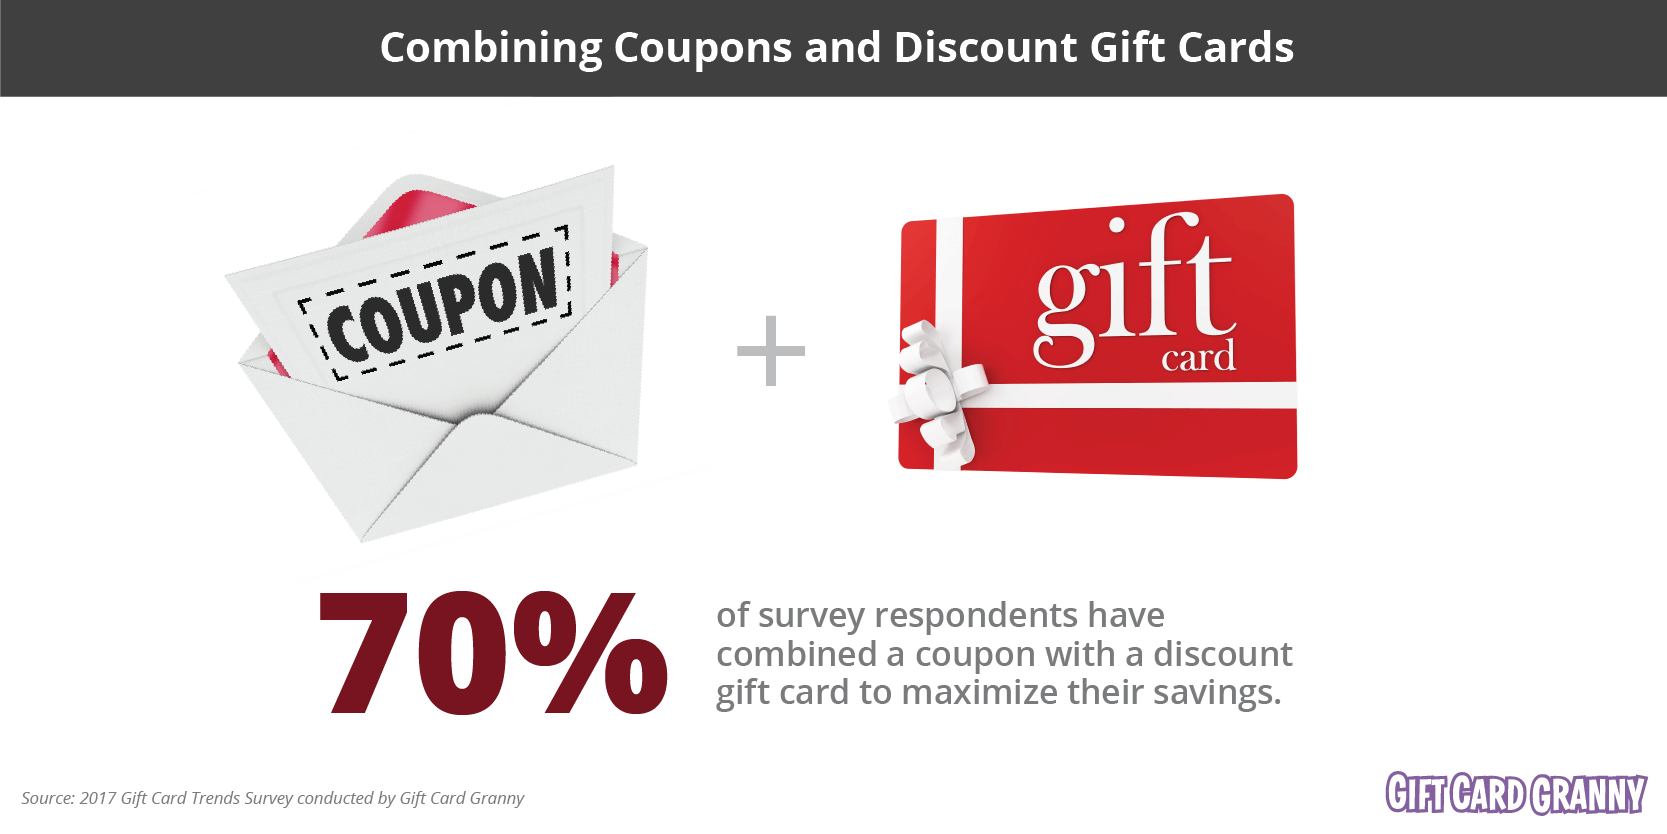 Combining Coupons And Discount Gift Cards